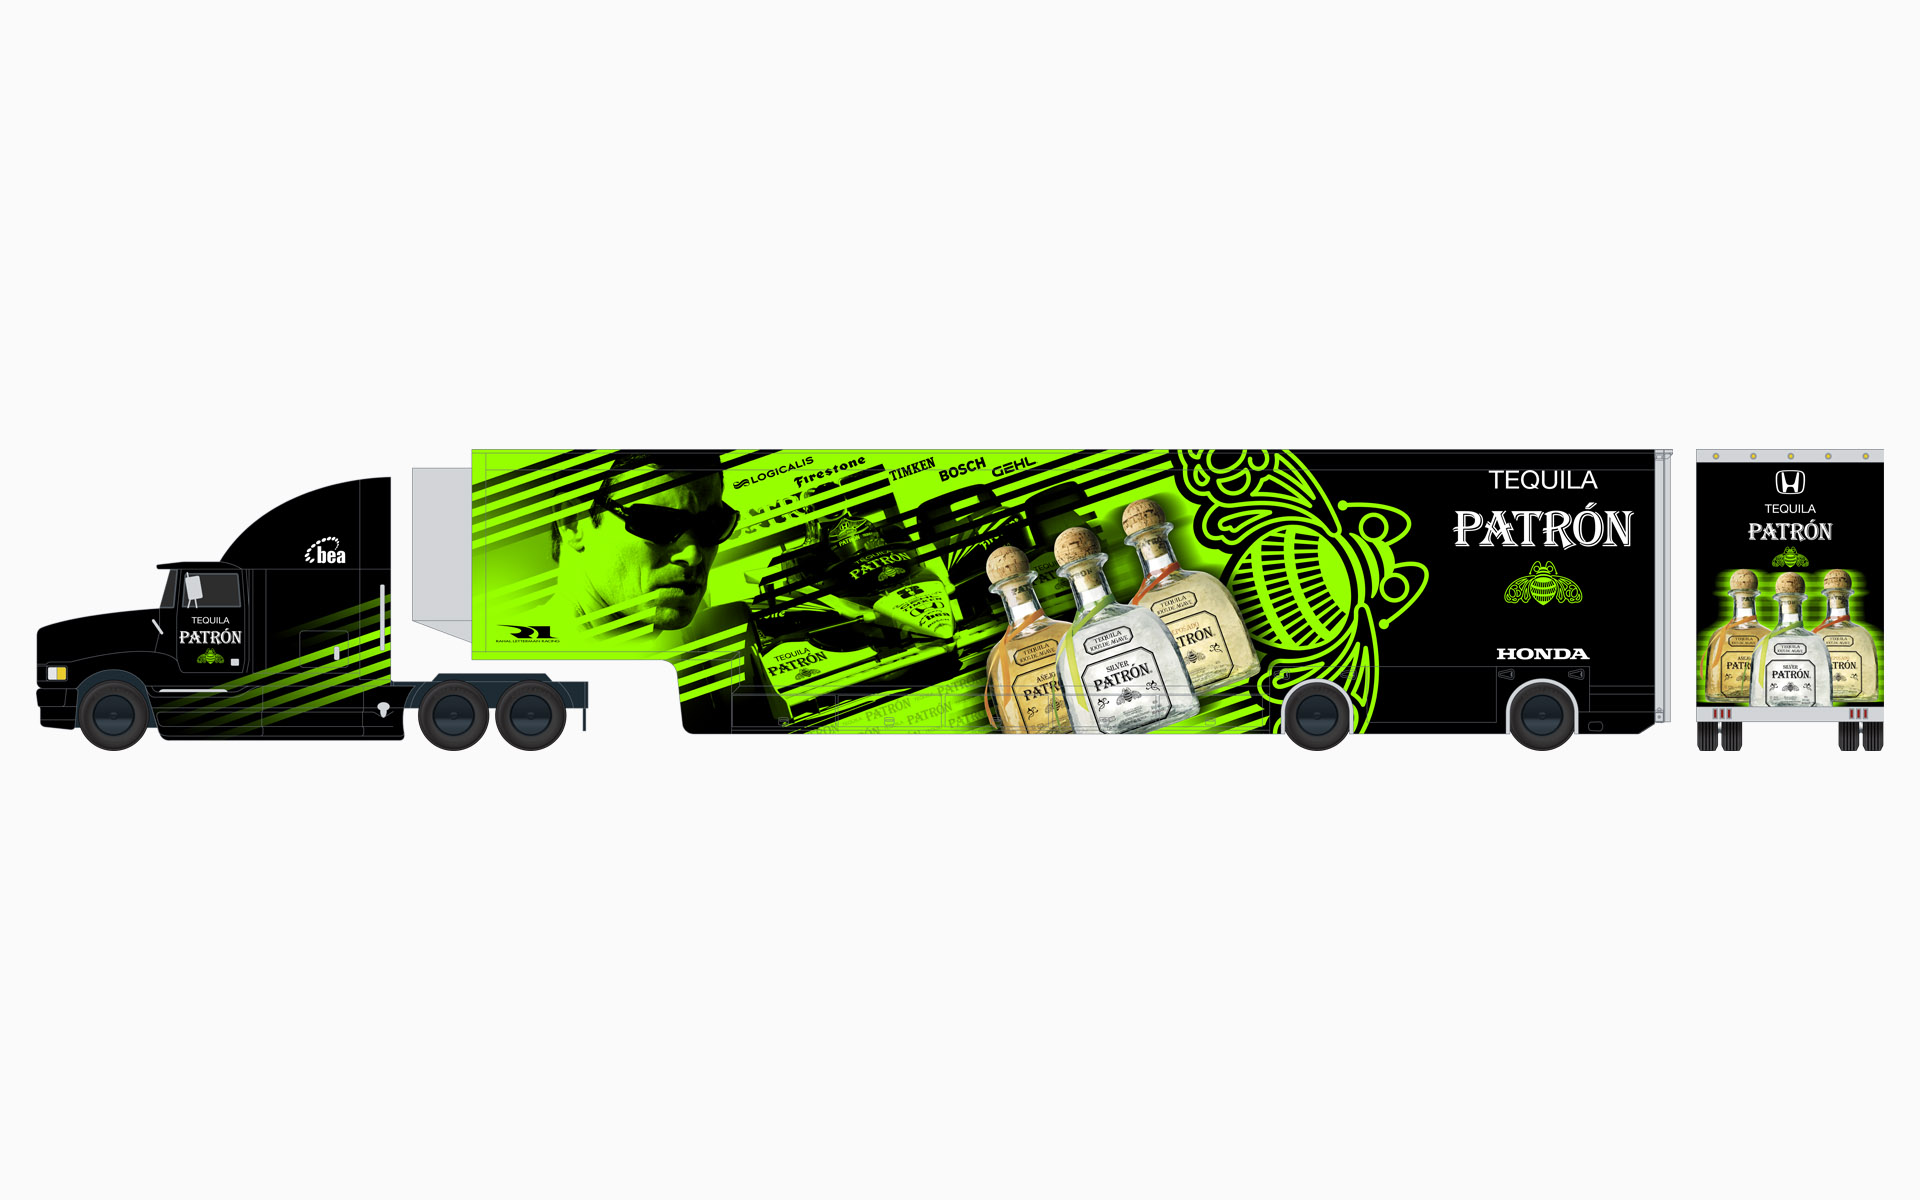 2007 Pátron Indy Racing Transporter Livery Elevations